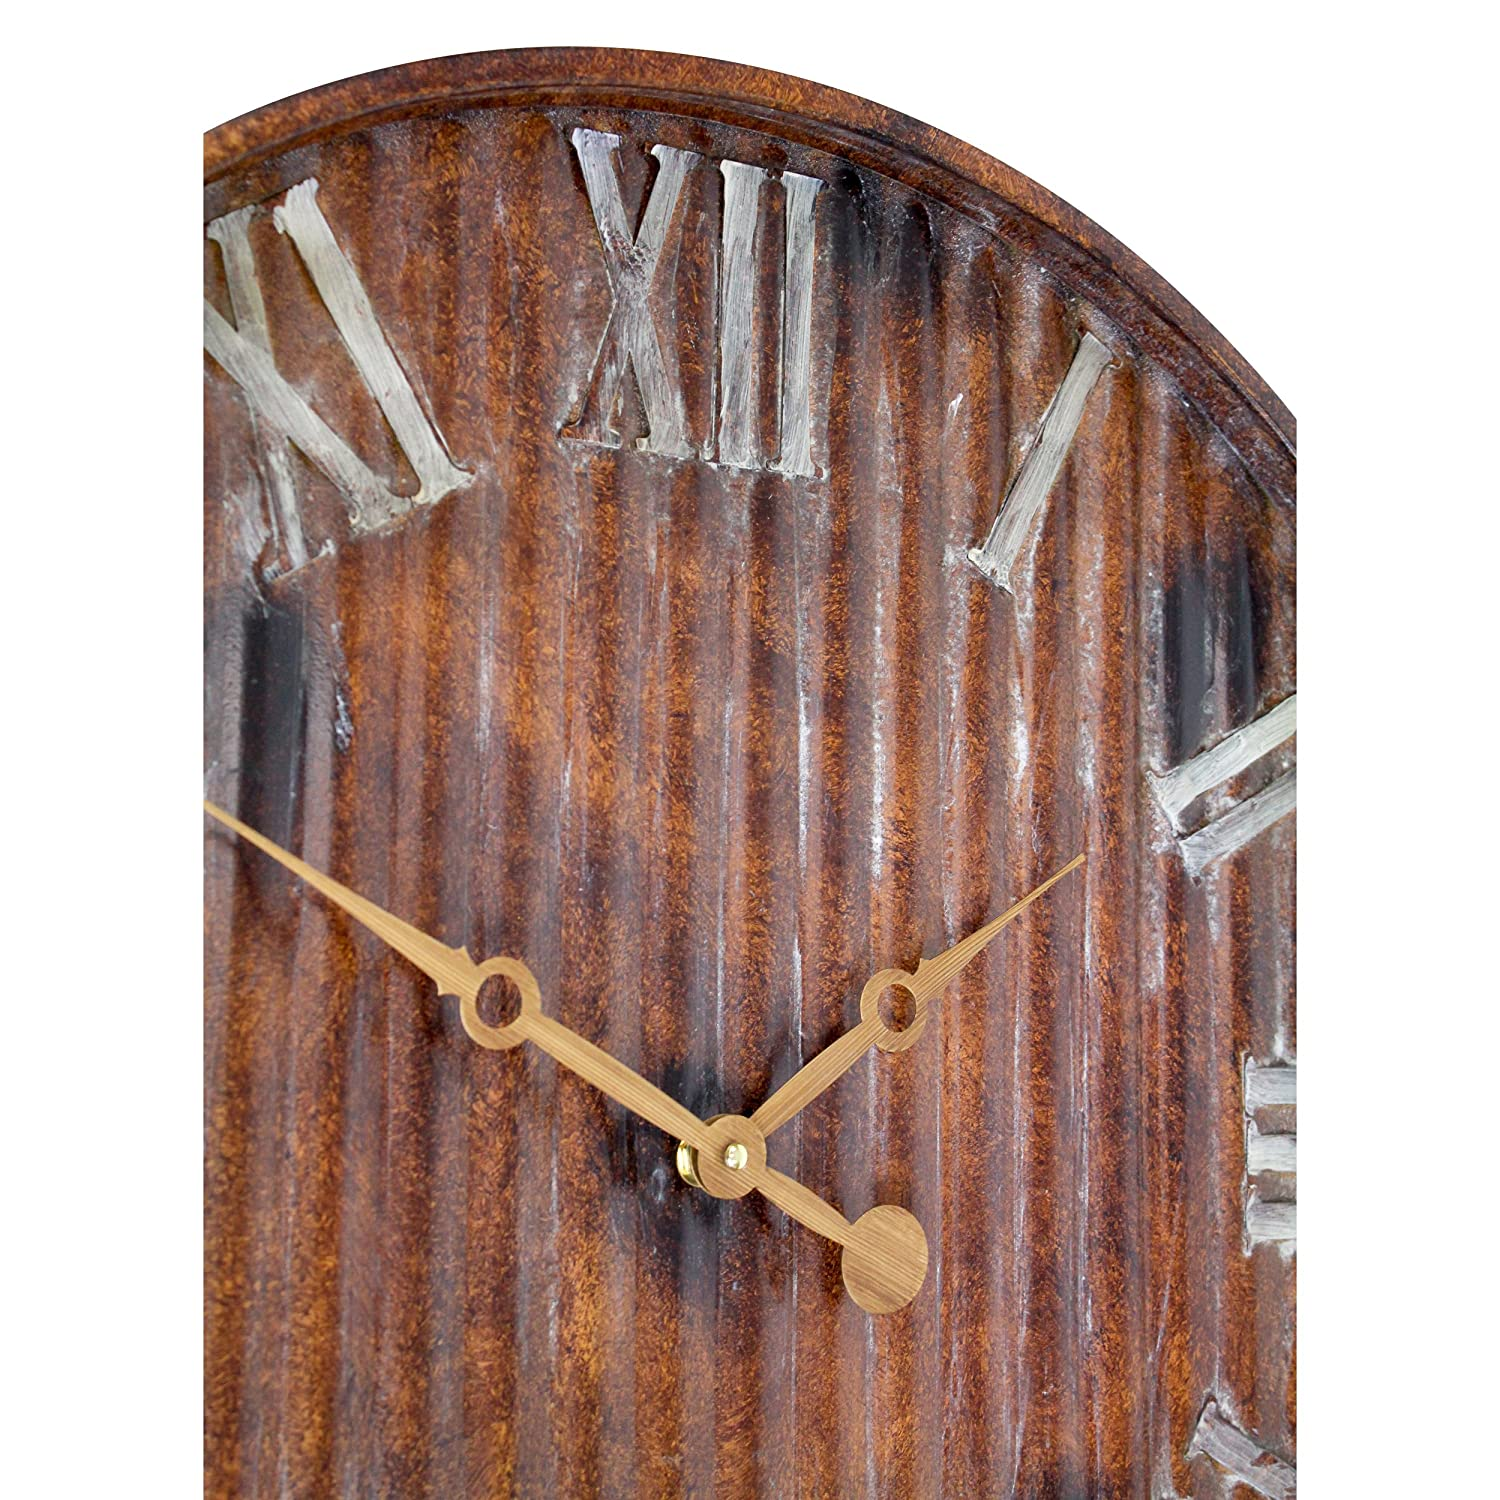 Aspire Marcelle Metal Wall Clock, Brown